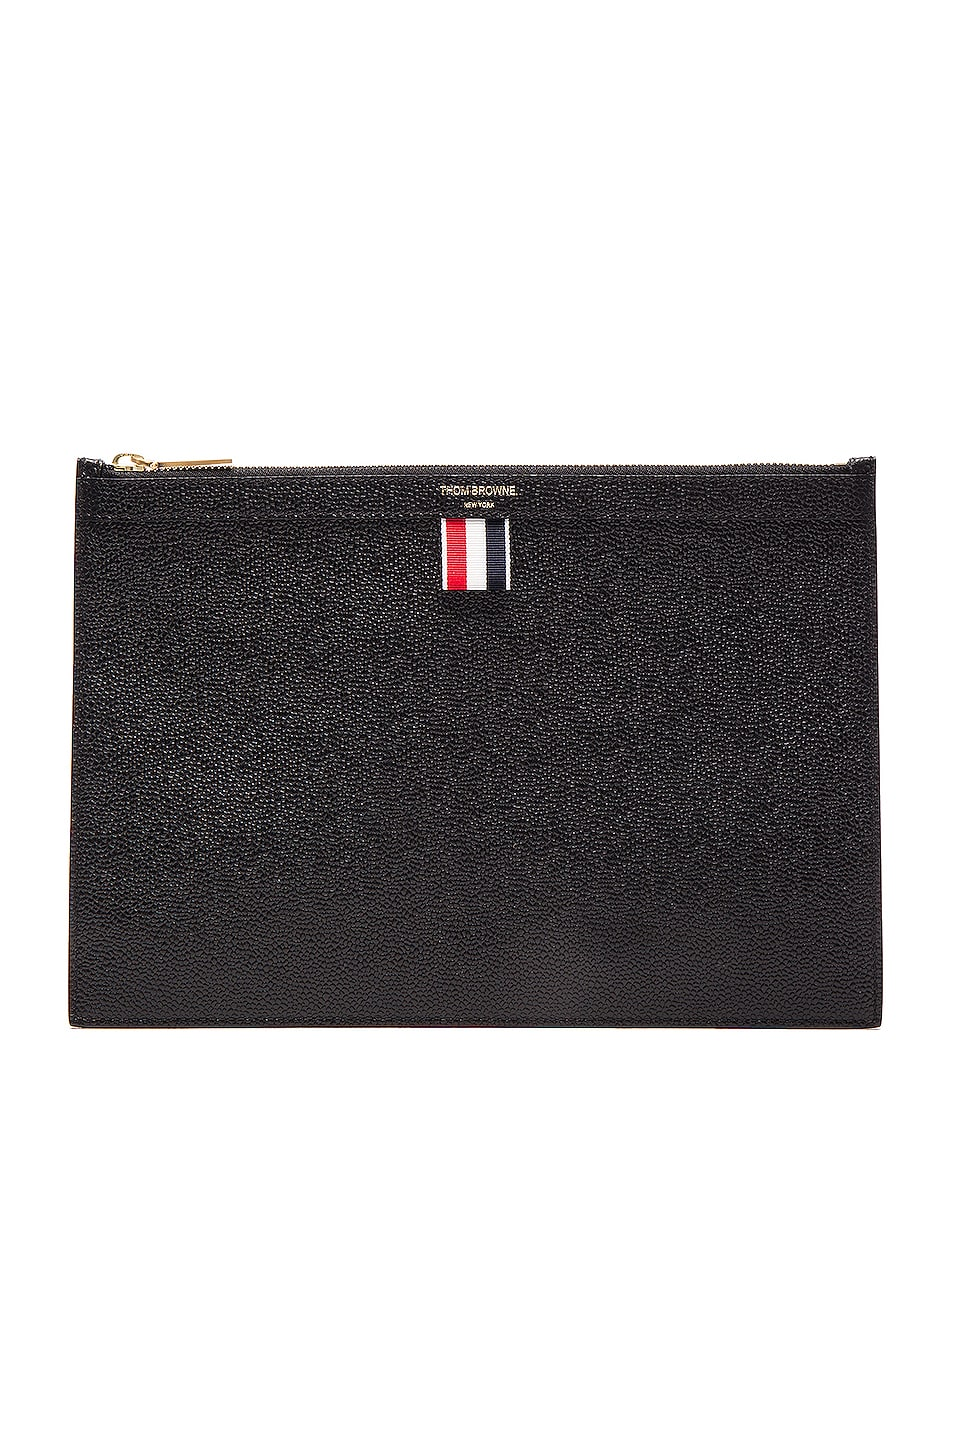 ca81c38838 Image 1 of Thom Browne Small Zipper Tablet Holder in Black